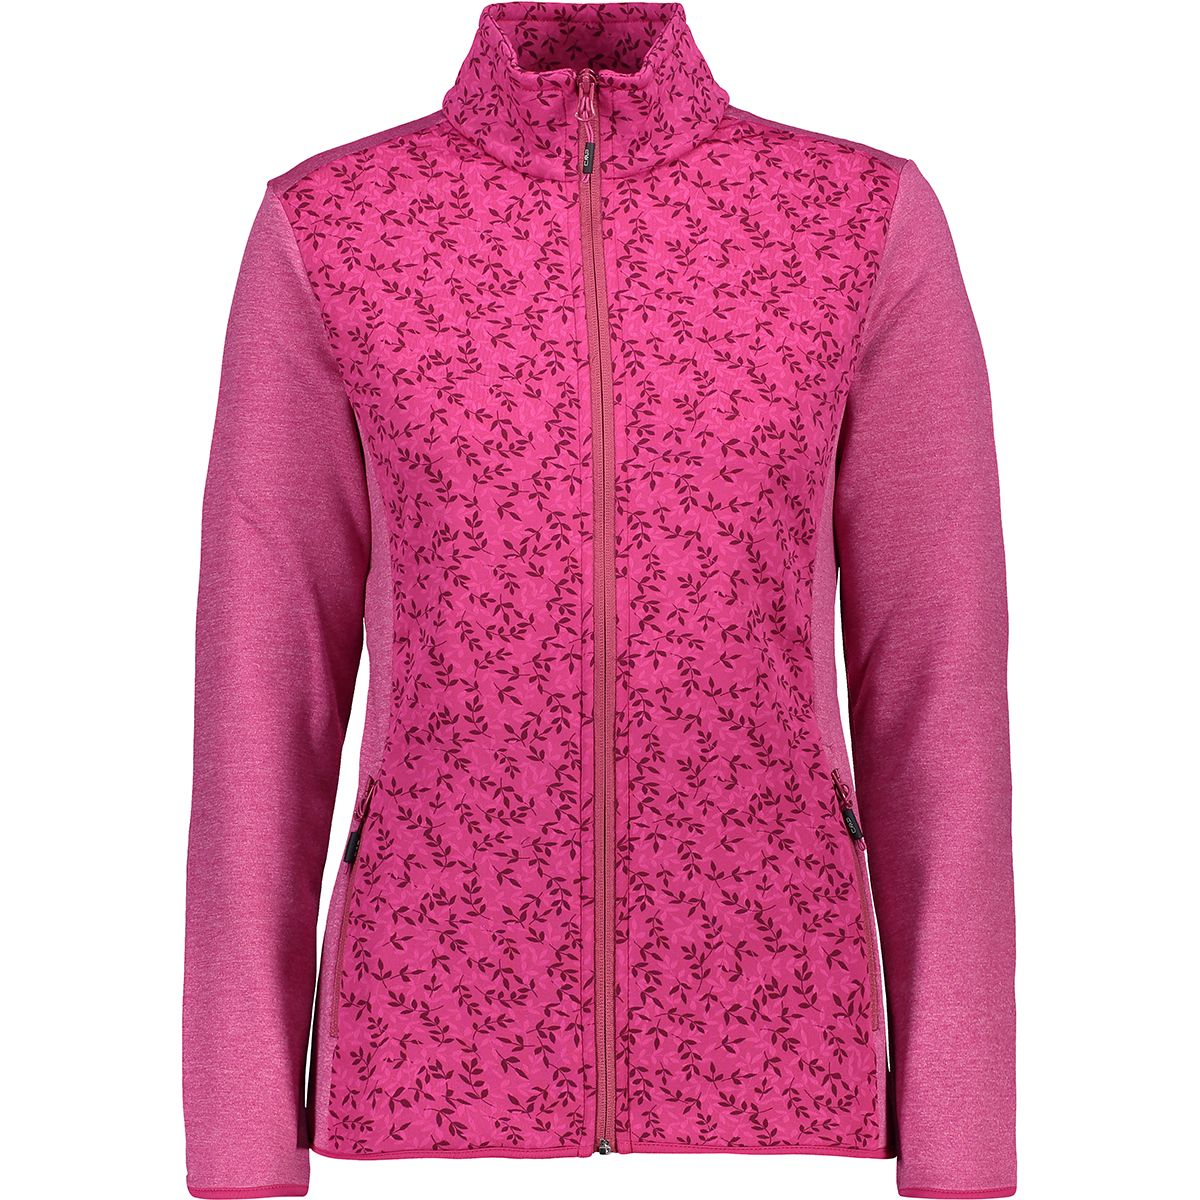 CMP Damen Stretch Fleece Jacke (Größe 4XL, Pink) | Fleecejacken > Damen